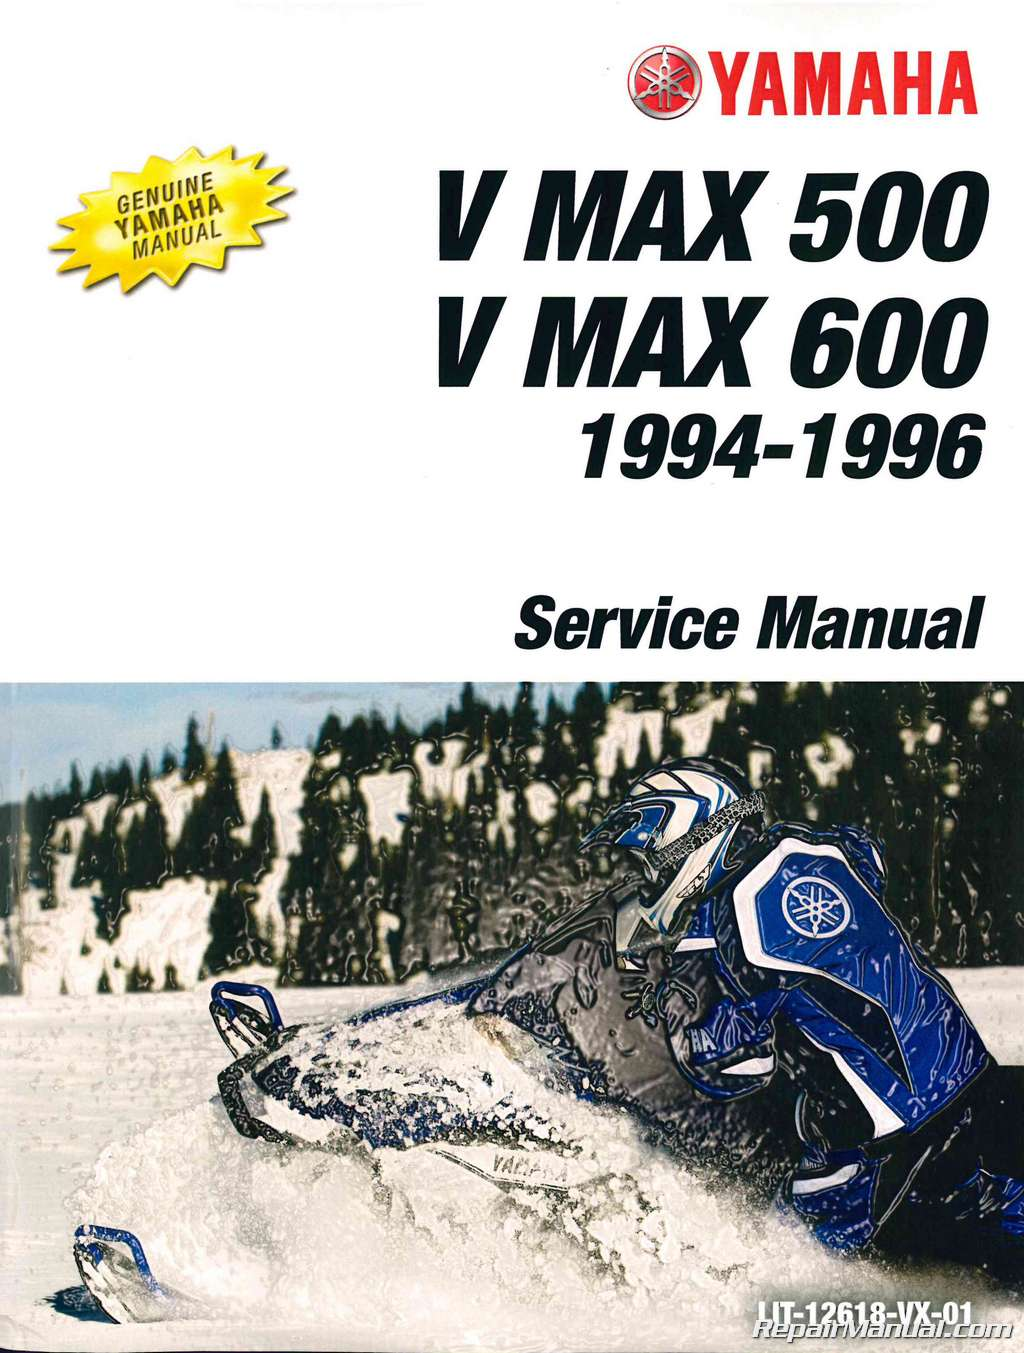 1994-1996 Yamaha V Max 500 VX500 And V Max 600 VX 600 ... on polaris wiring diagrams, yamaha mountain max parts, harley davidson wiring diagrams, fiat electrical wiring diagrams, kawasaki jet ski wiring diagrams, honda wiring diagrams, suzuki wiring diagrams, yamaha enticer 250 carburetor diagram, mercury wiring diagrams, international truck wiring diagrams, atv wiring diagrams, ktm wiring diagrams, motorcycle wiring diagrams, yamaha scooter wiring diagrams, bmw wiring diagrams, johnson controls wiring diagrams, polaris snowmobile parts diagrams, yamaha generators wiring diagrams, polaris snowmobile engine diagrams, arctic cat wiring diagrams,